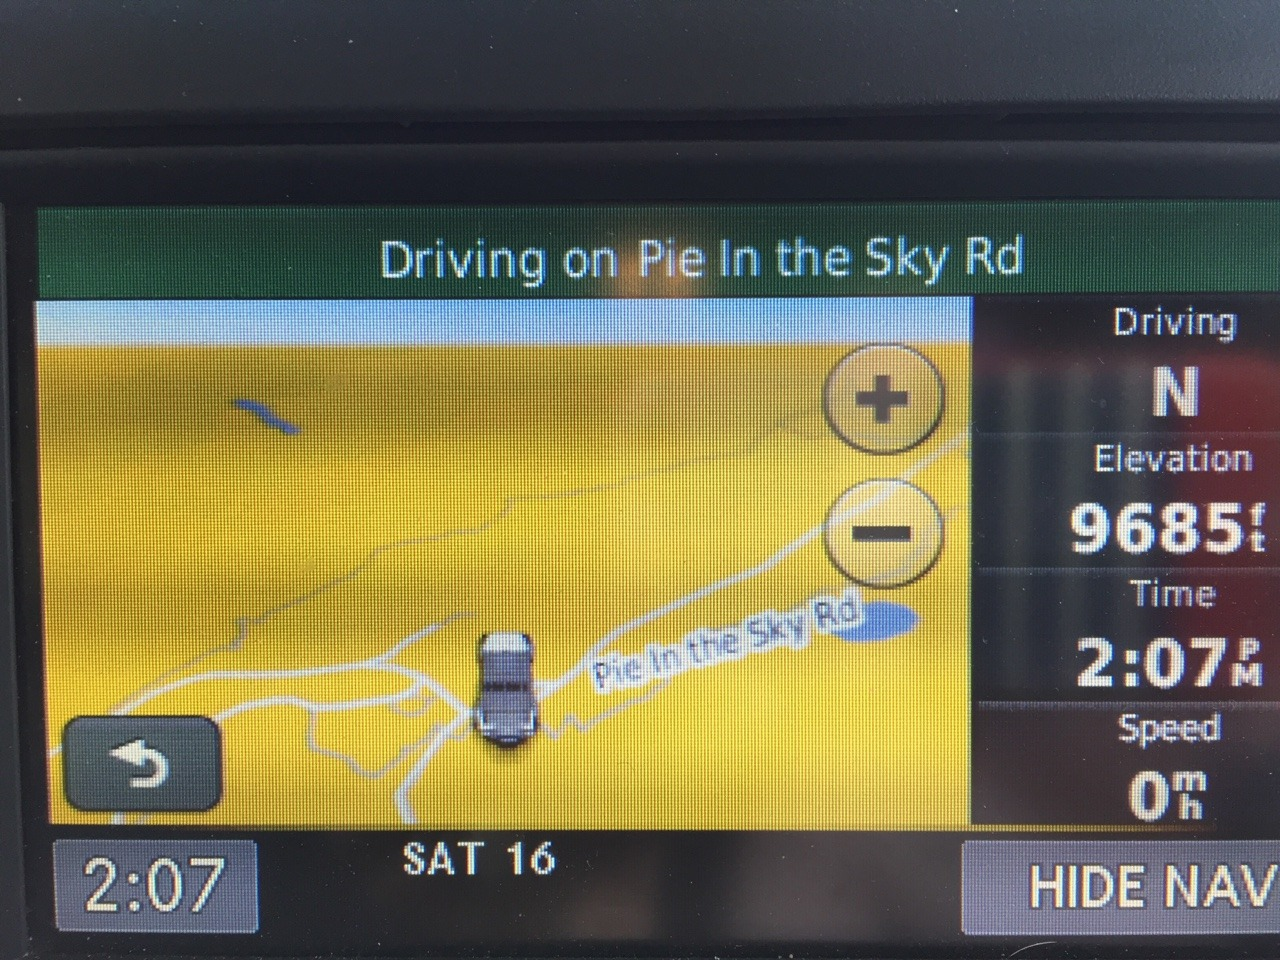 Very, very sad to find NO pie in the sky. Life lesson.